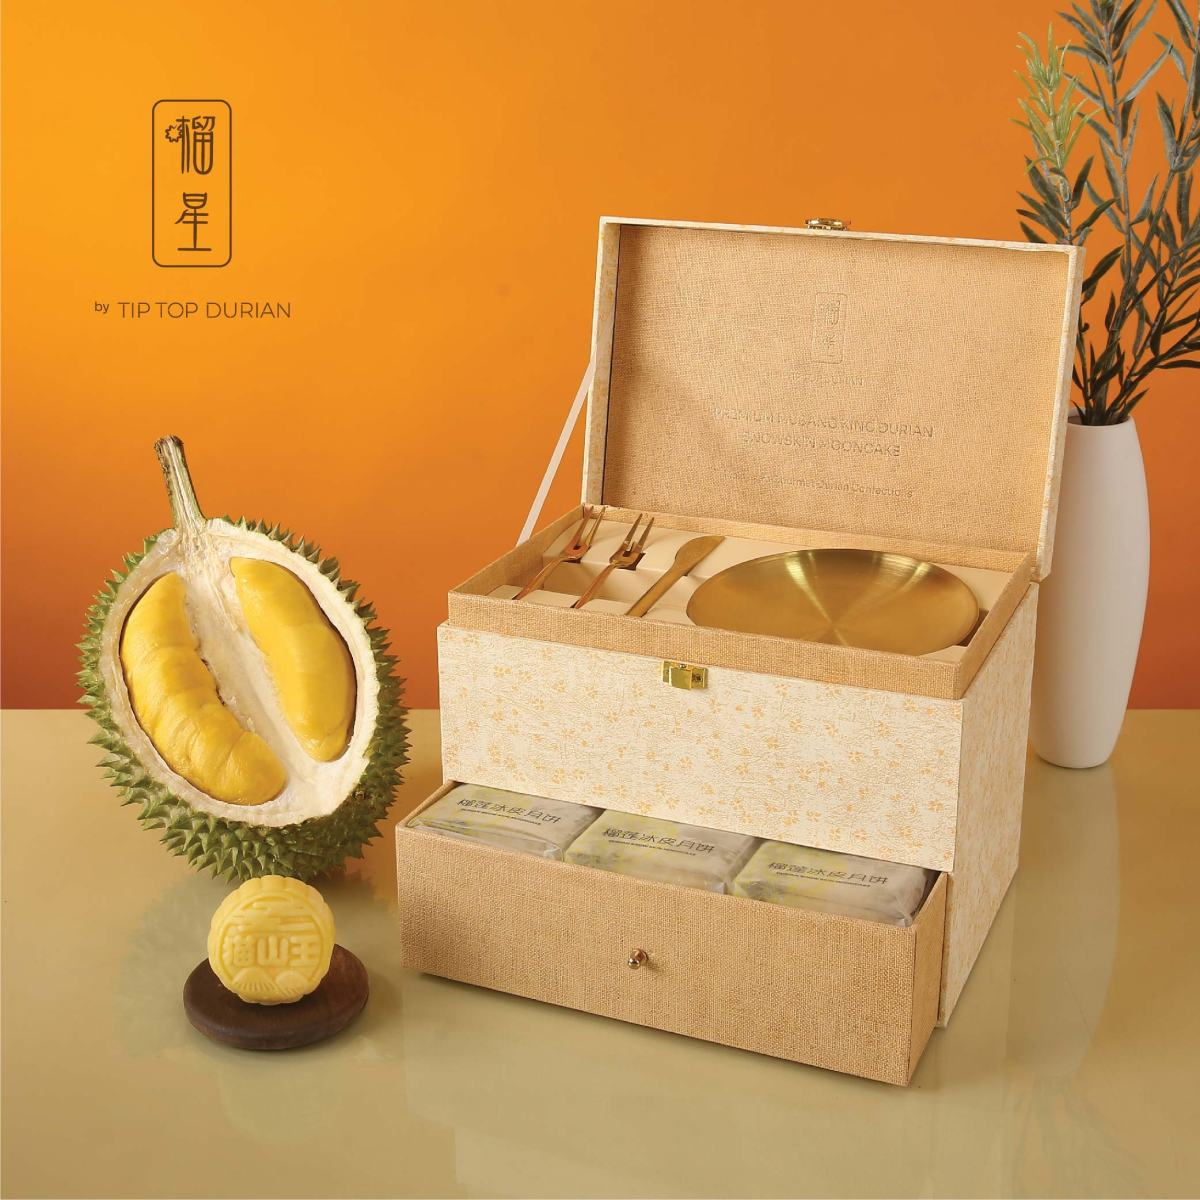 Durian Mooncake 2021| Tip Top Durian Delivery | Malaysia Top Fresh Durian Online Delivery